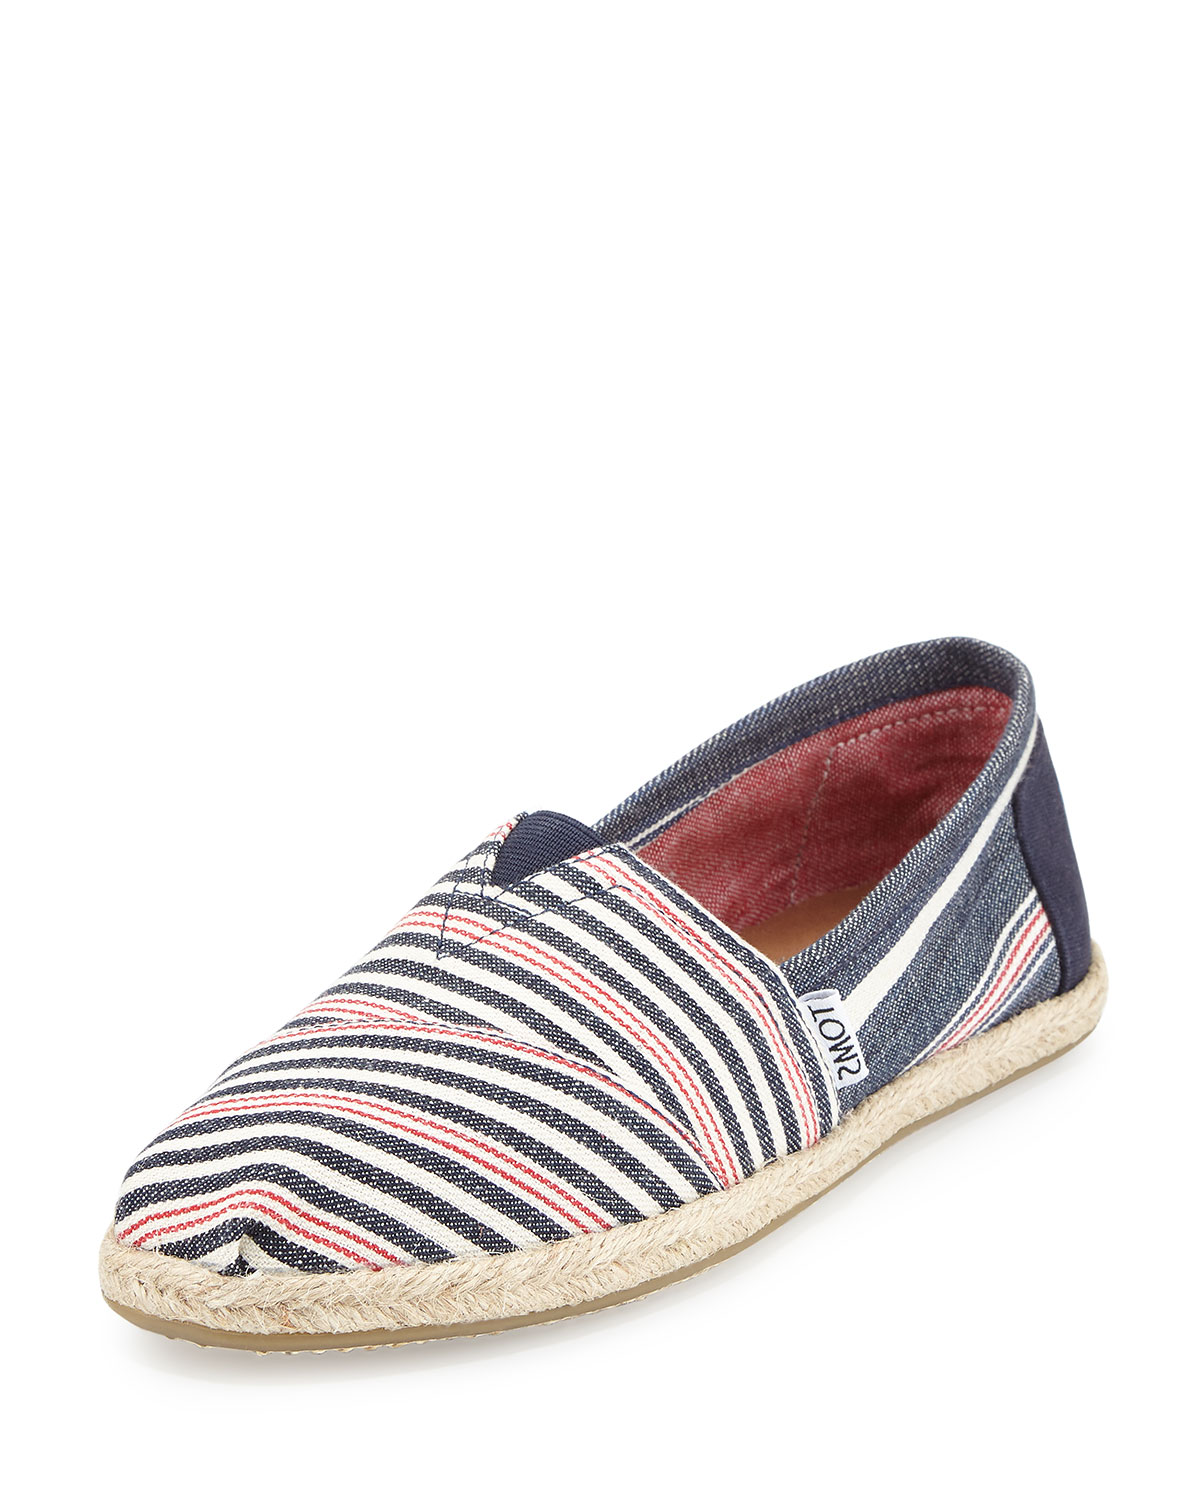 5ec4be83927 TOMS Seasonal Classic Alpargata Canvas Slip-On